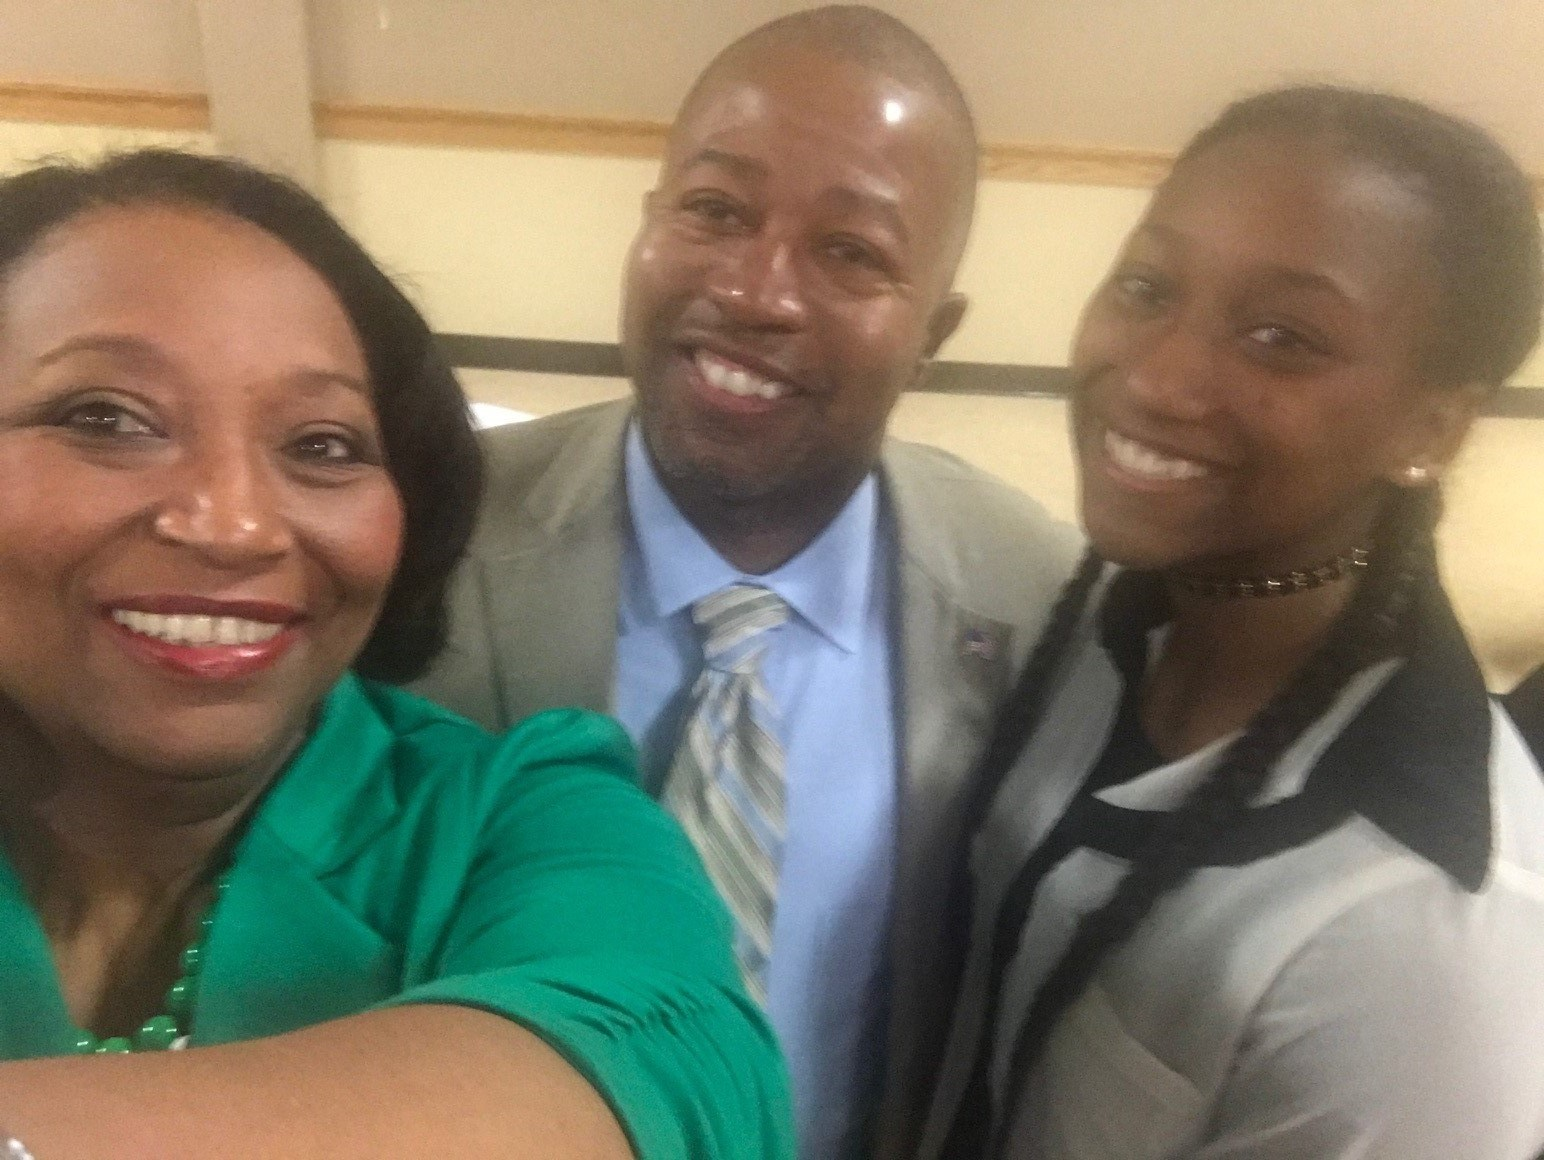 All smiles as Superintendent Mr. Patrick Jenkins meets Jyhreh Johnson